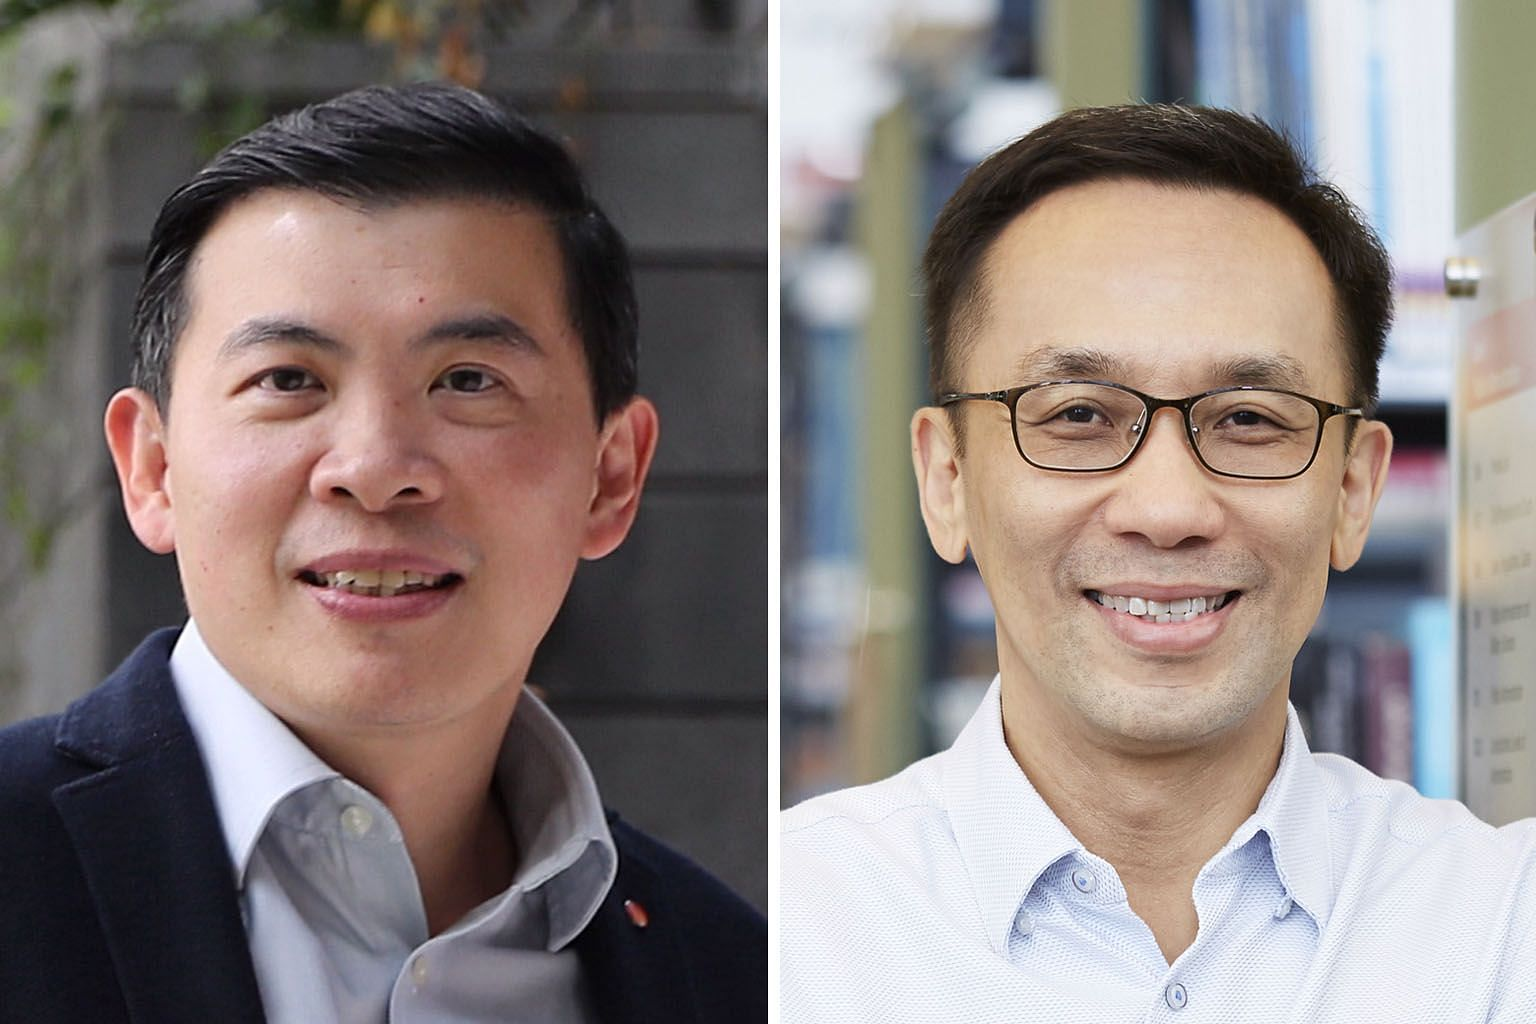 Changi Airport Group's current CEO Lee Seow Hiang (left) replaces Mr Chan Heng Kee as NLB chairman.